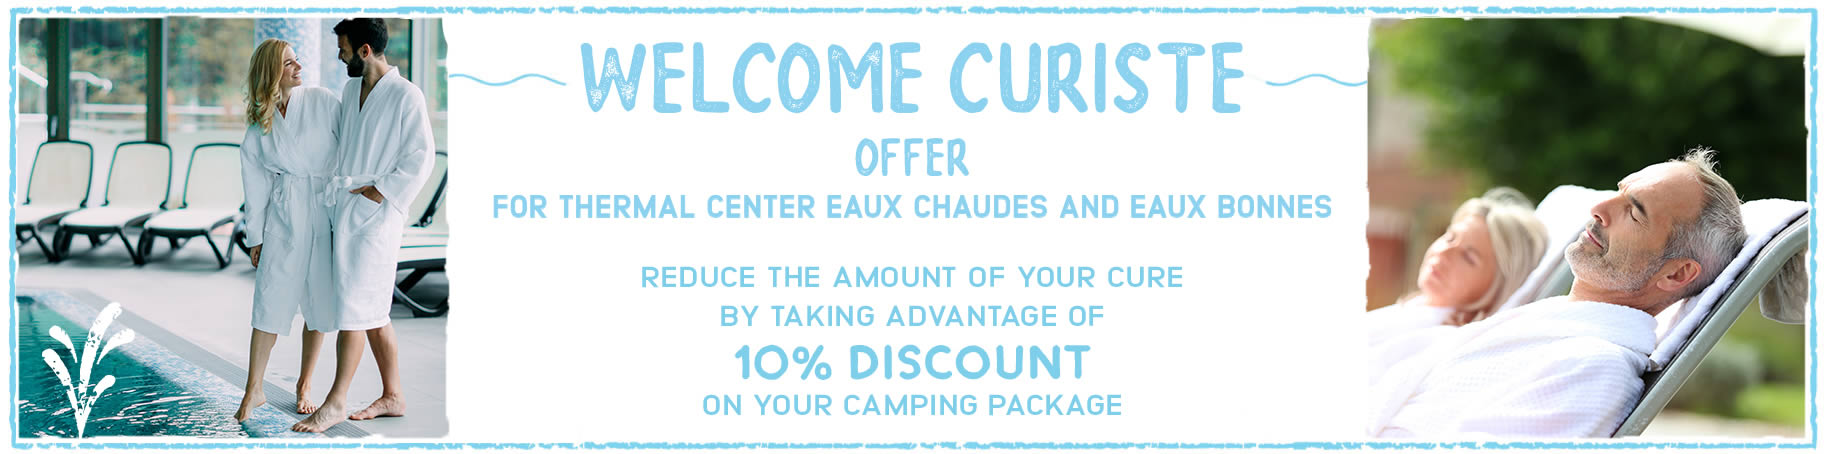 Our welcome curist holiday offer